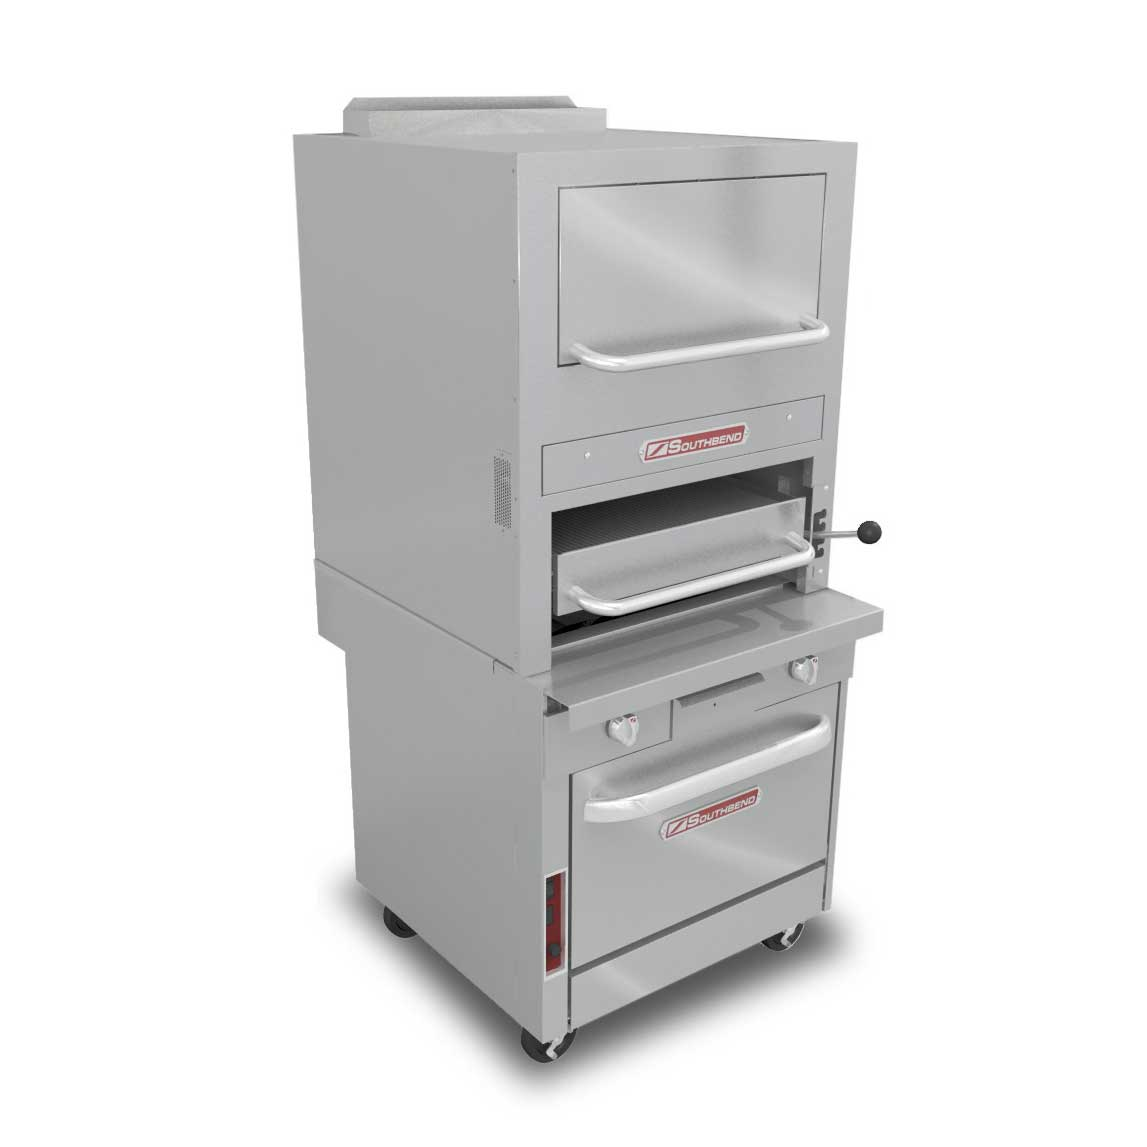 Southbend P32C-32B broiler, deck-type, gas